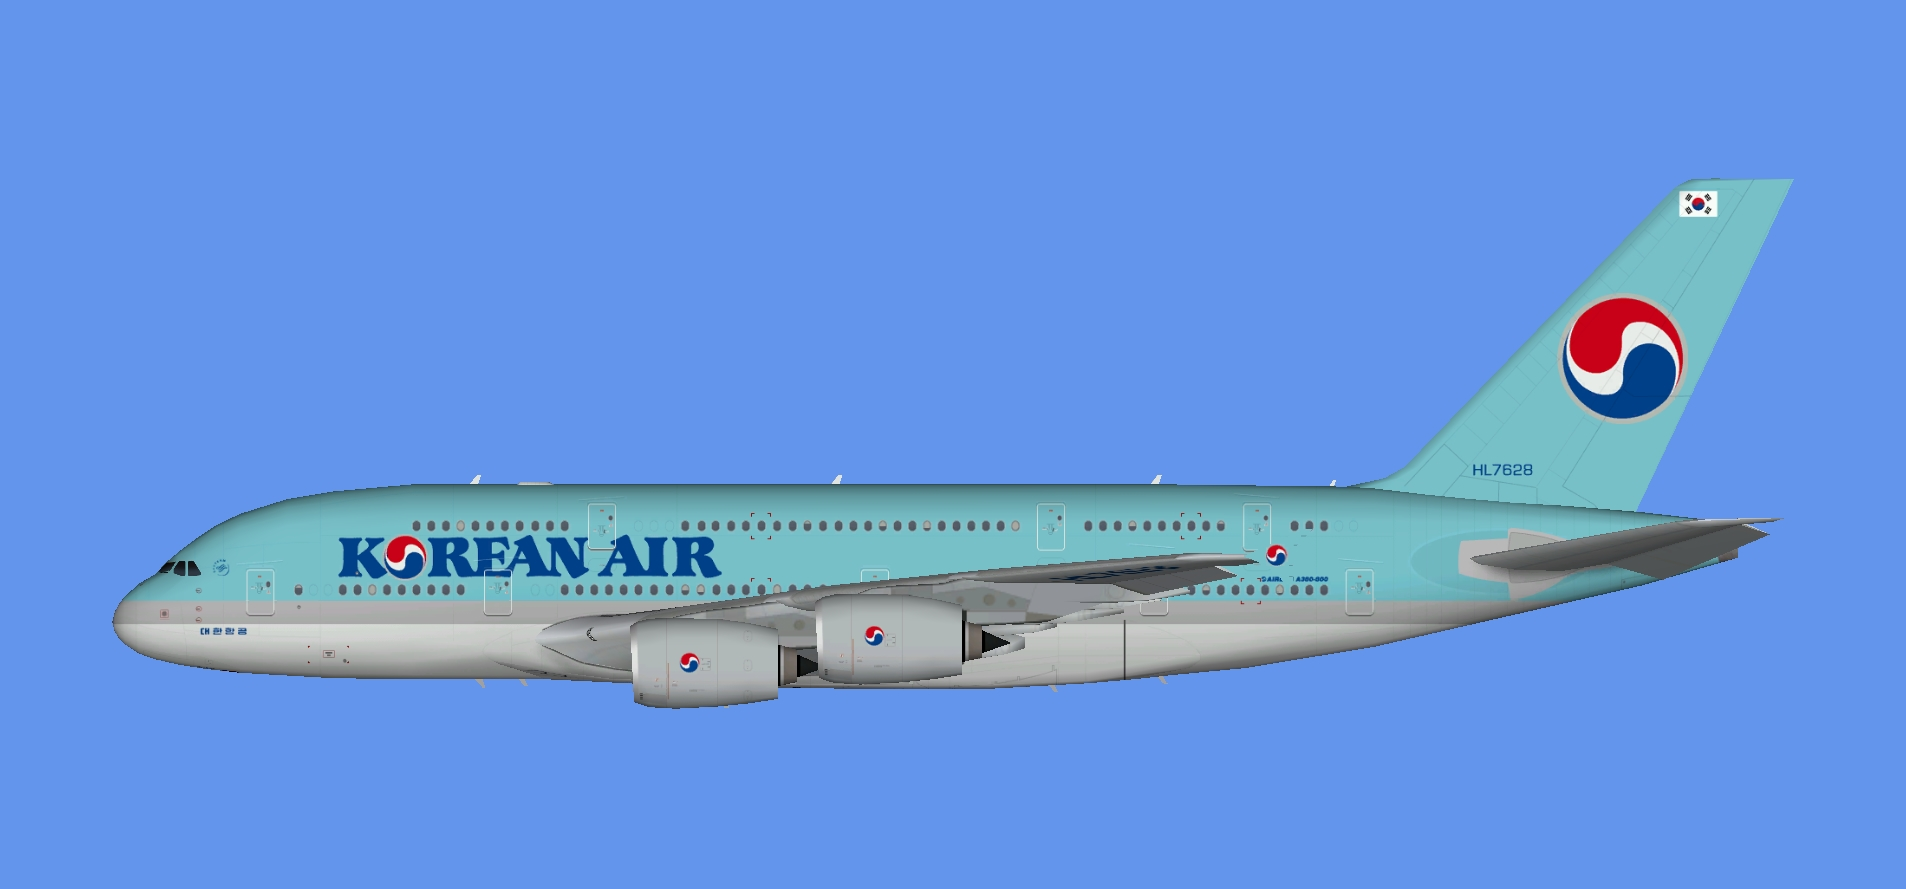 Korean Air - The Flying Carpet Hub